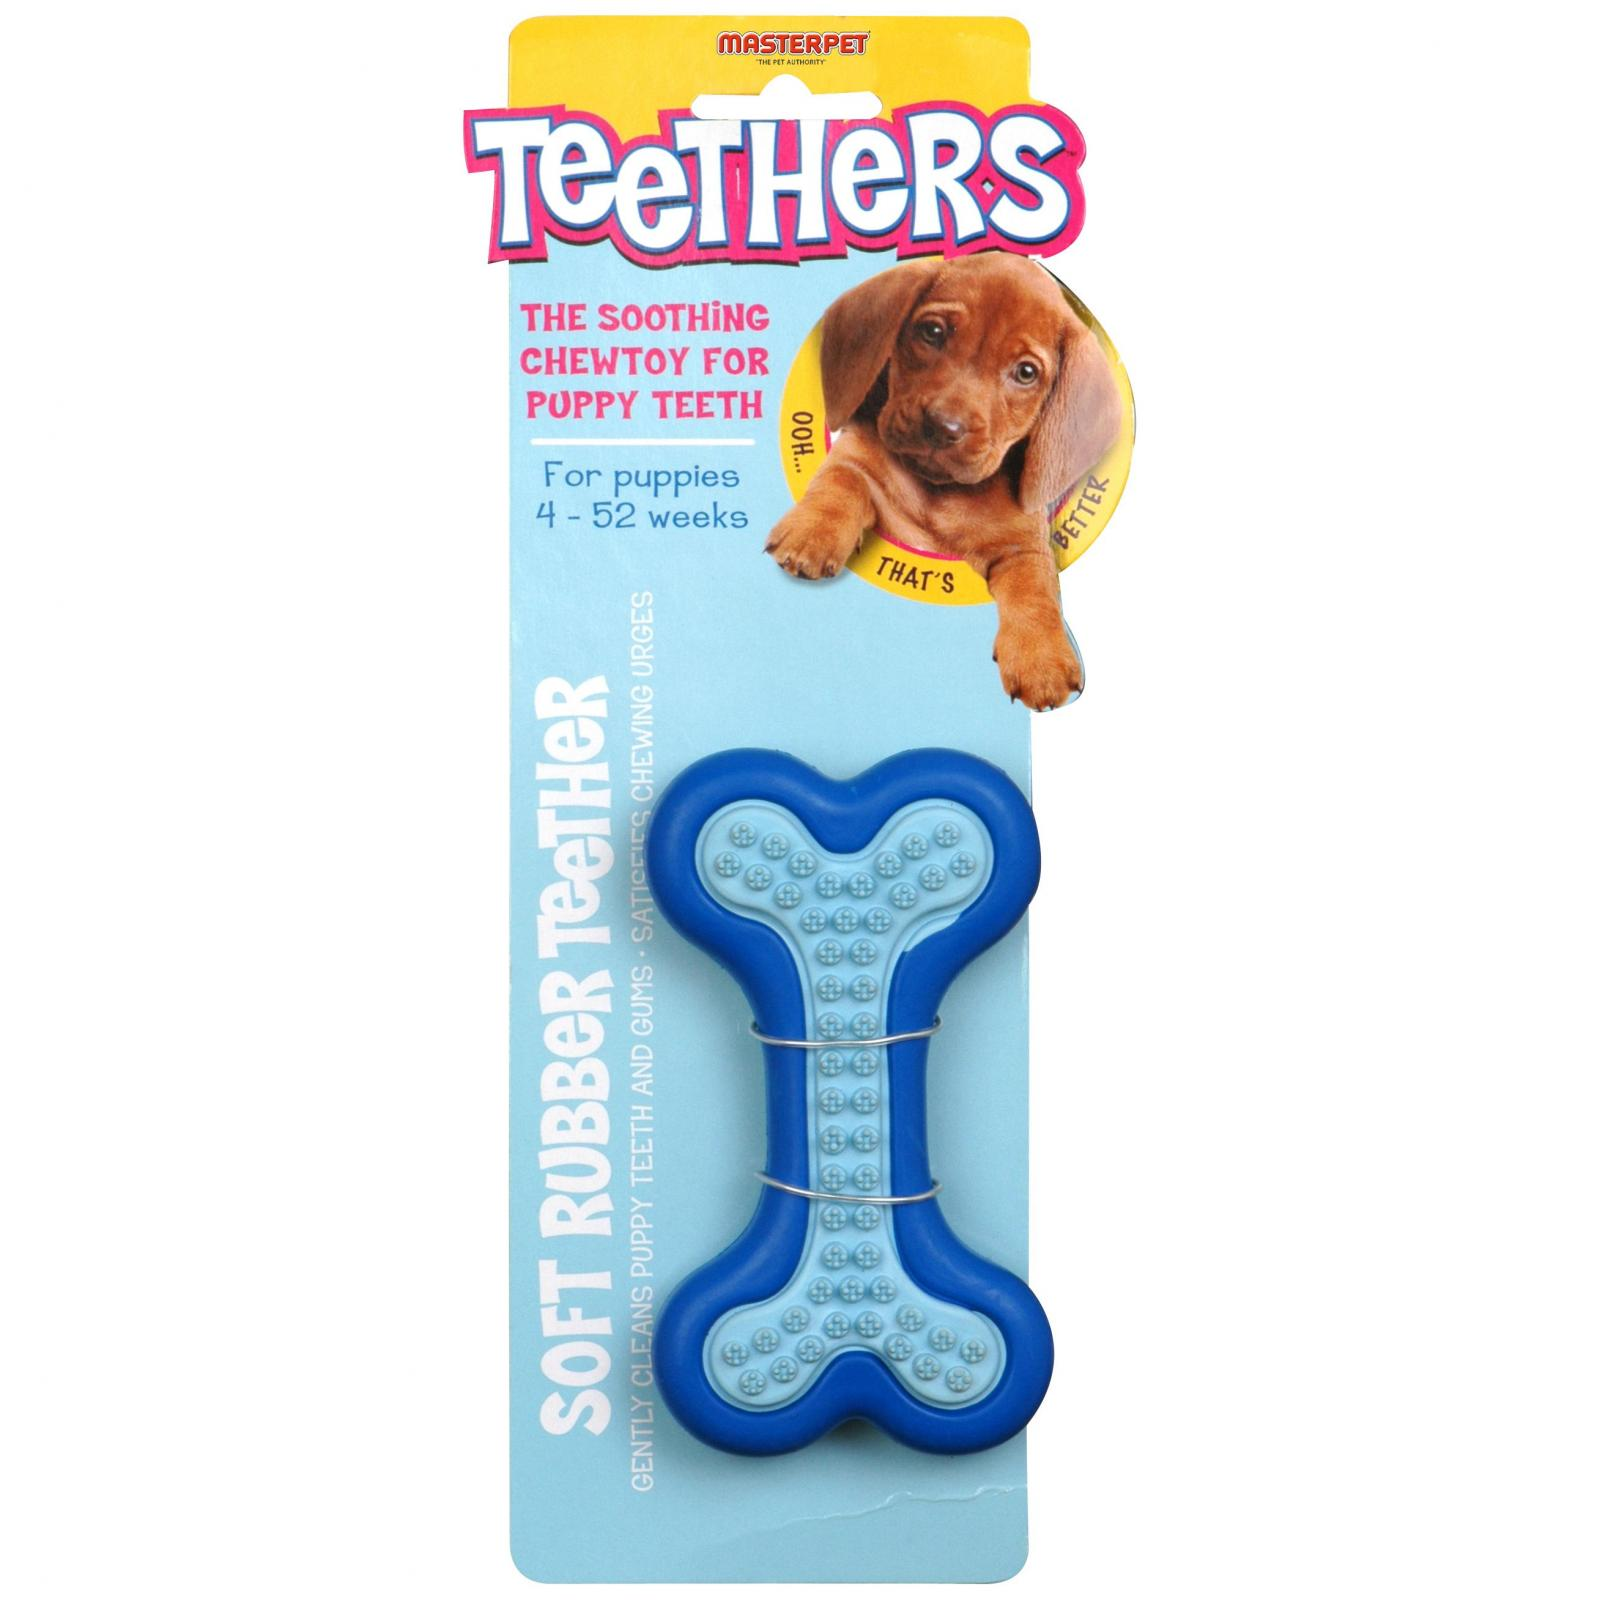 Masterpet Teethers - Dental Massager Bone Dog Chew Toy